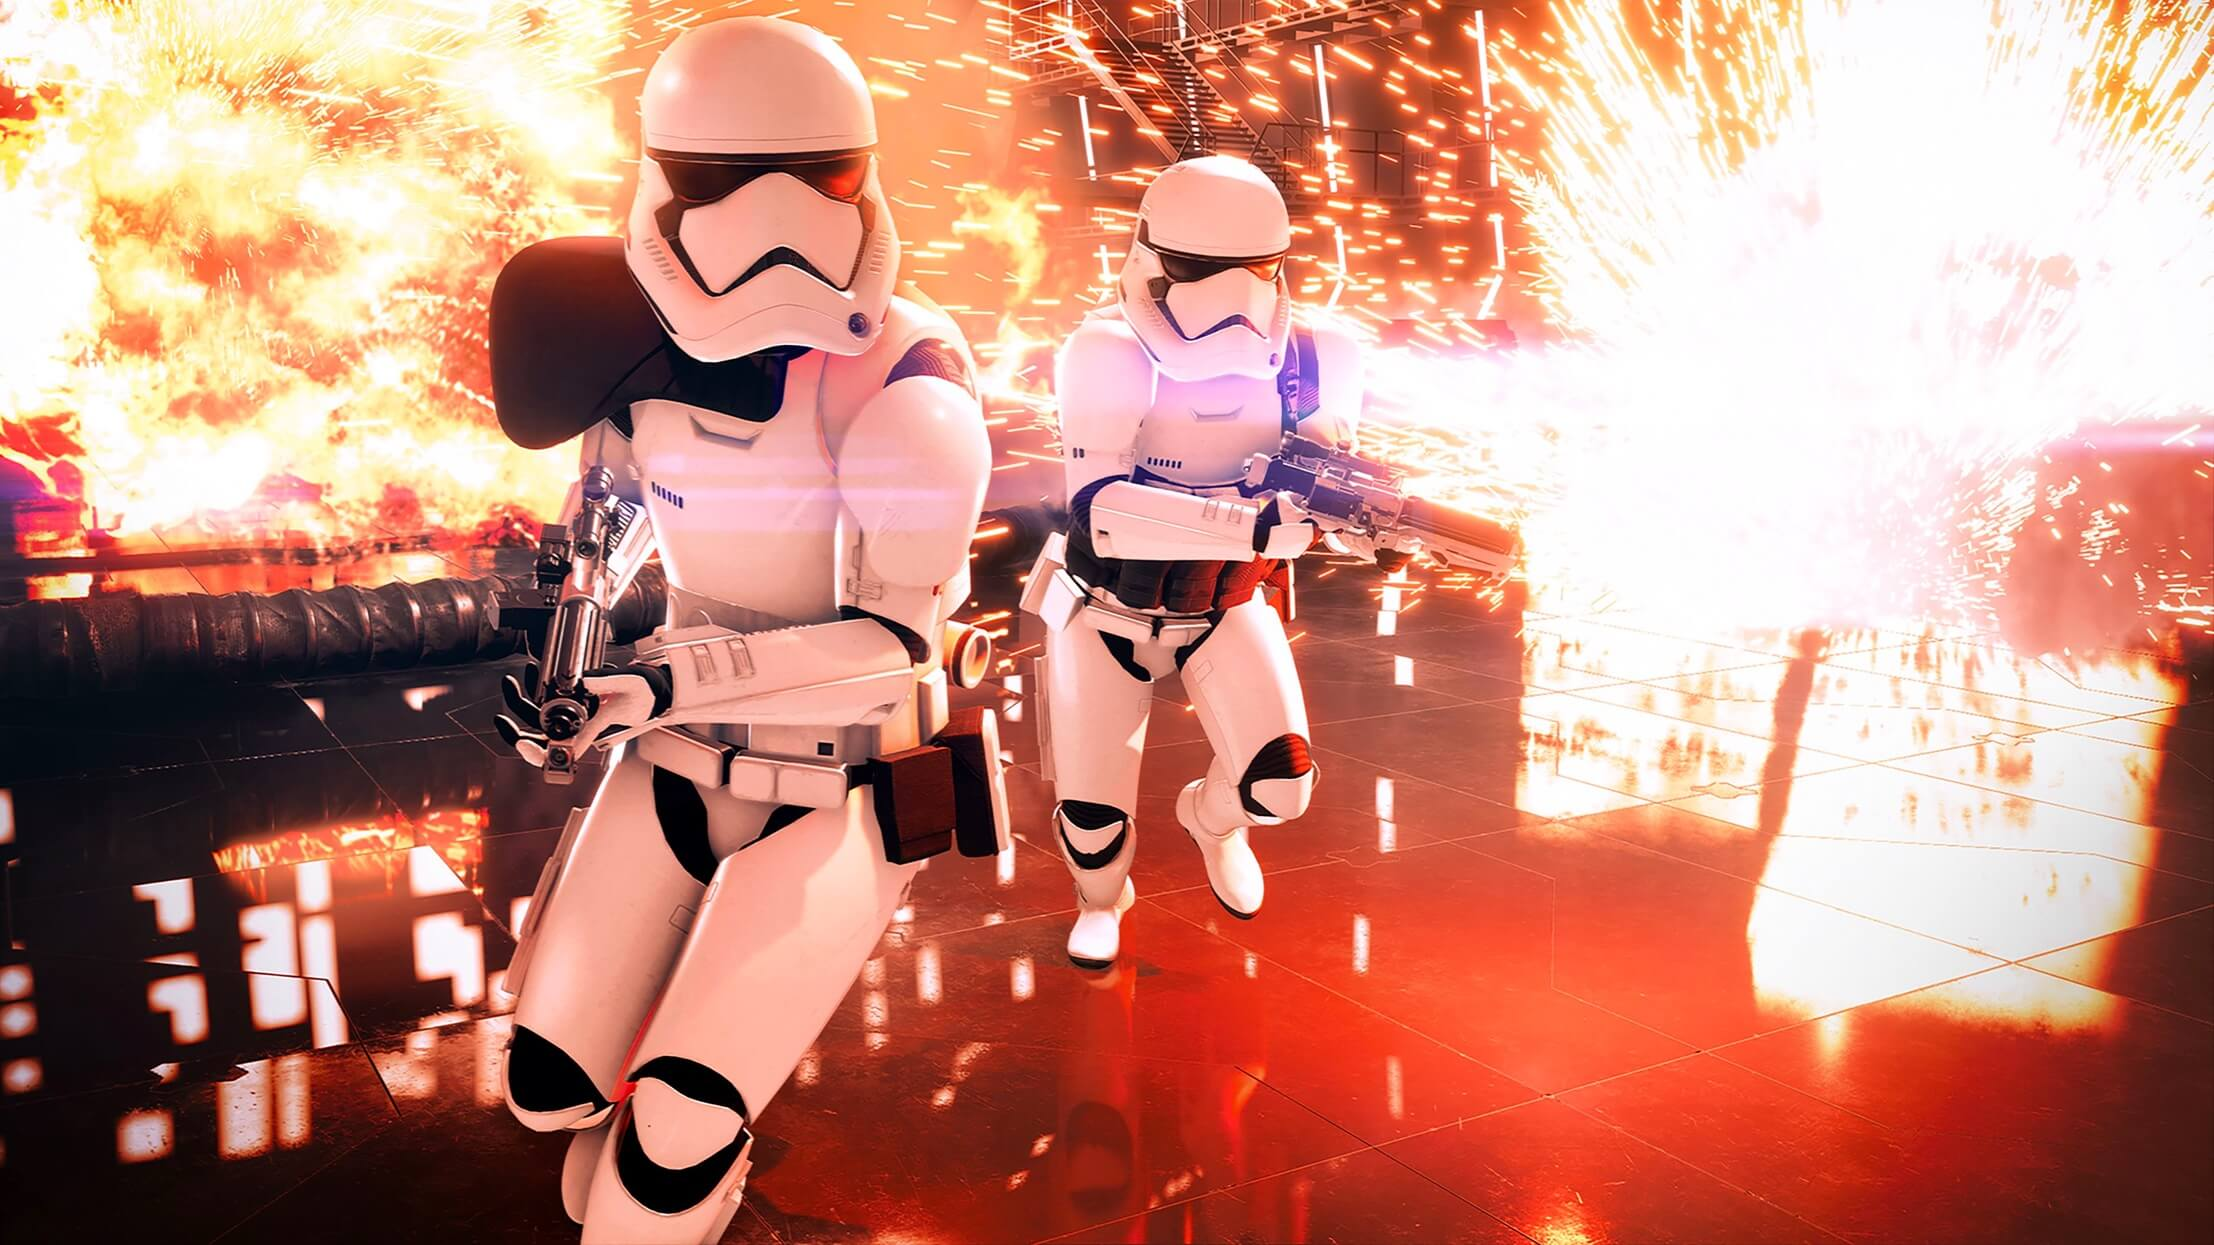 Opinion: EA's troubled decade of Star Wars games